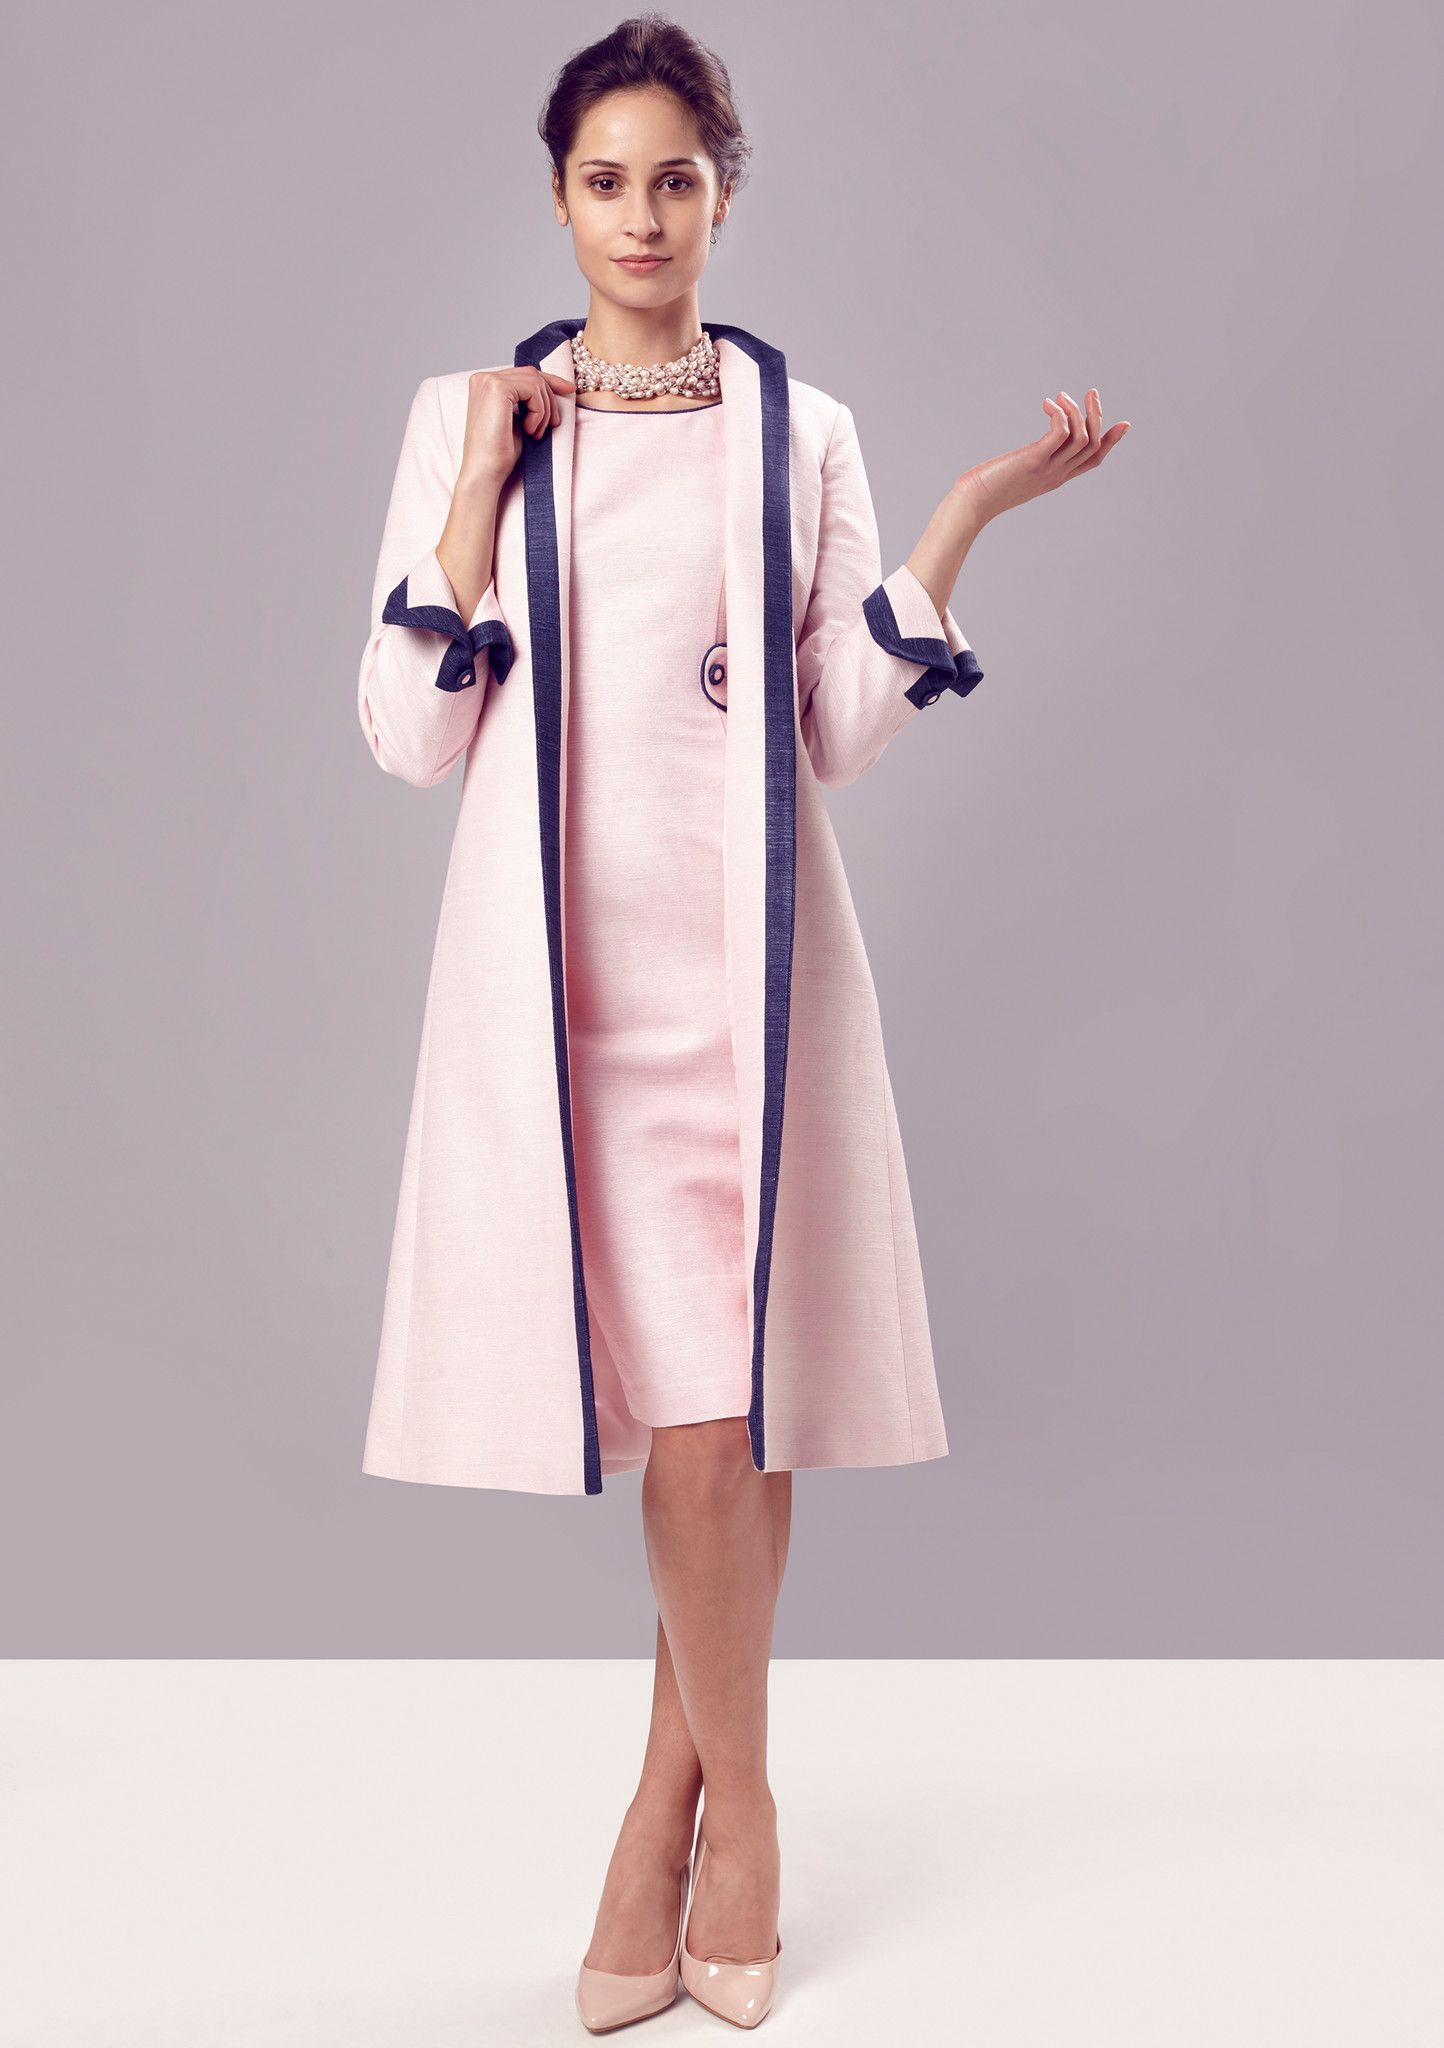 Dress Coat in Pale Pink Silk with Navy Trim - Lorna | Silk, Navy ...